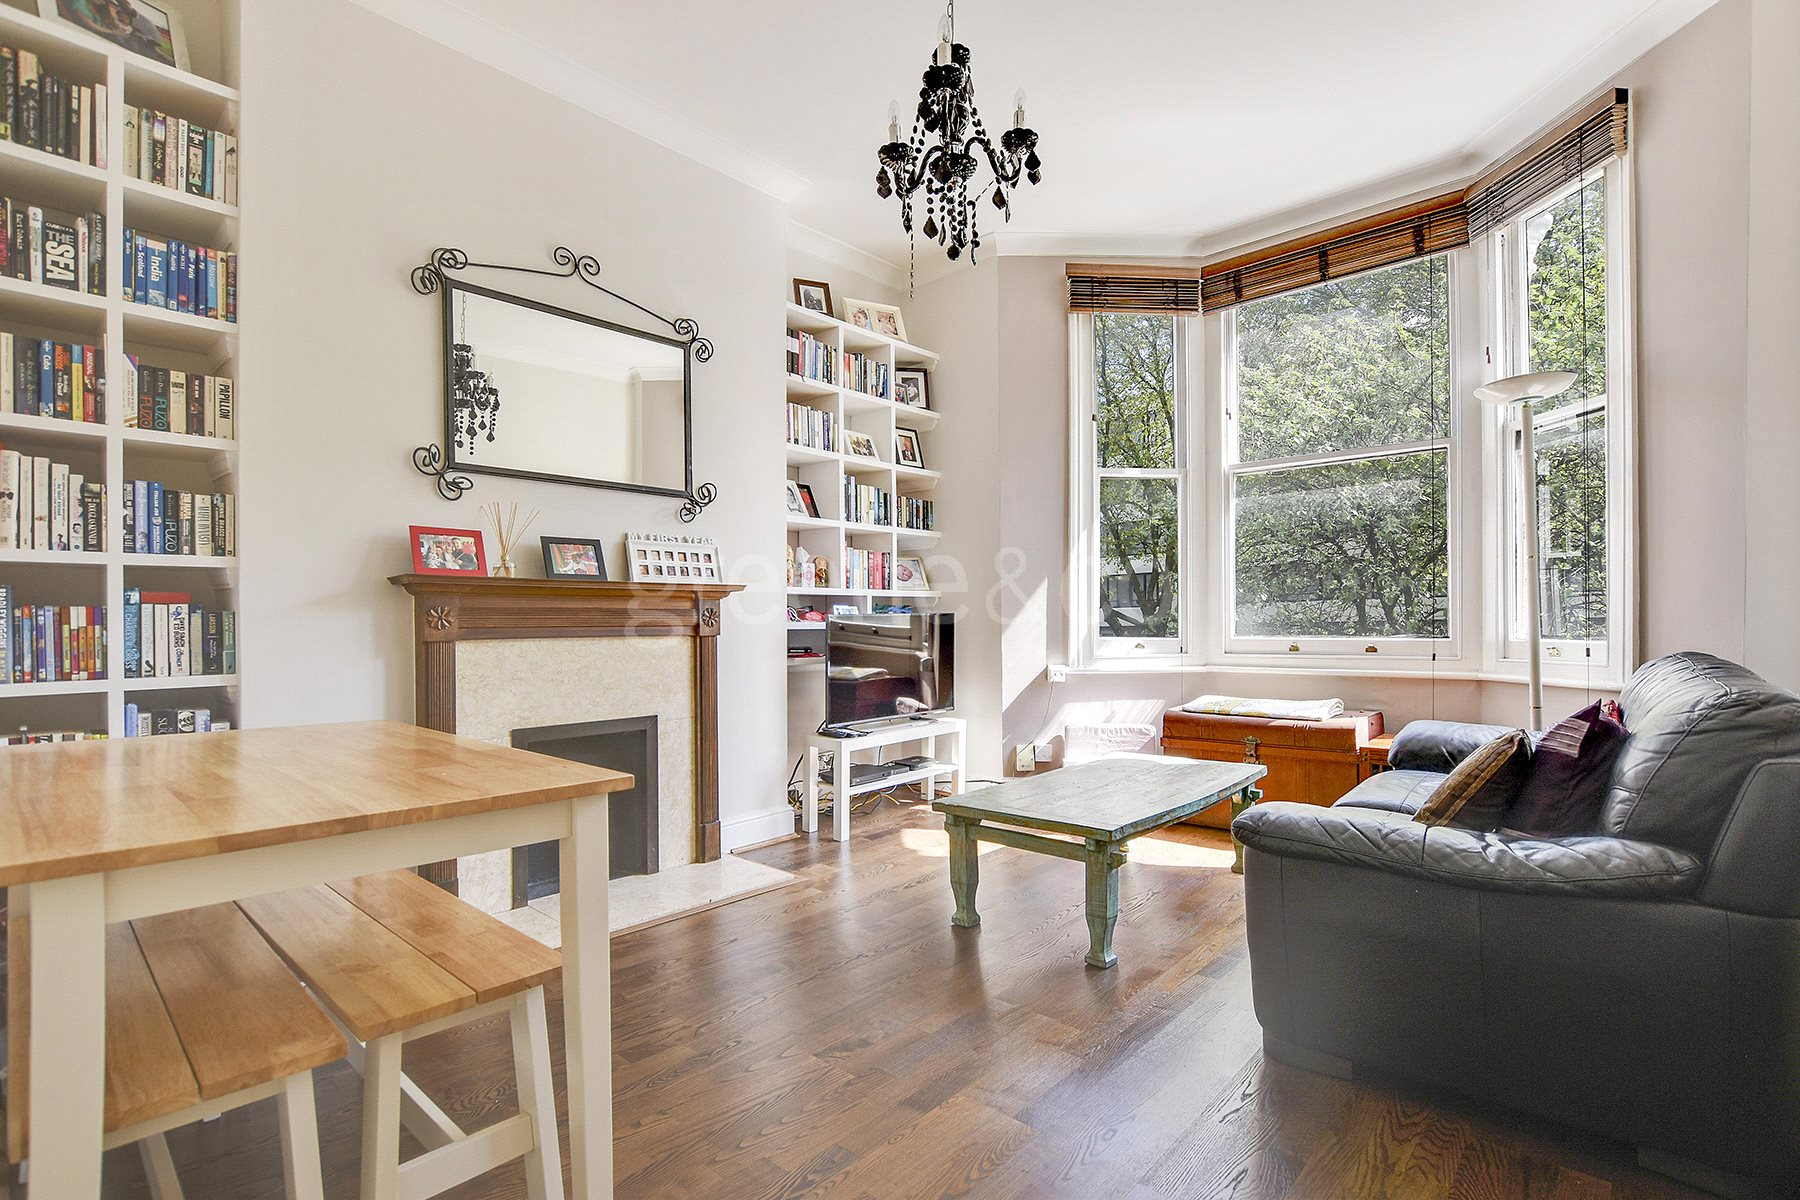 2 Bedrooms Flat for sale in Mansfield Road, Belsize Park, London, NW3